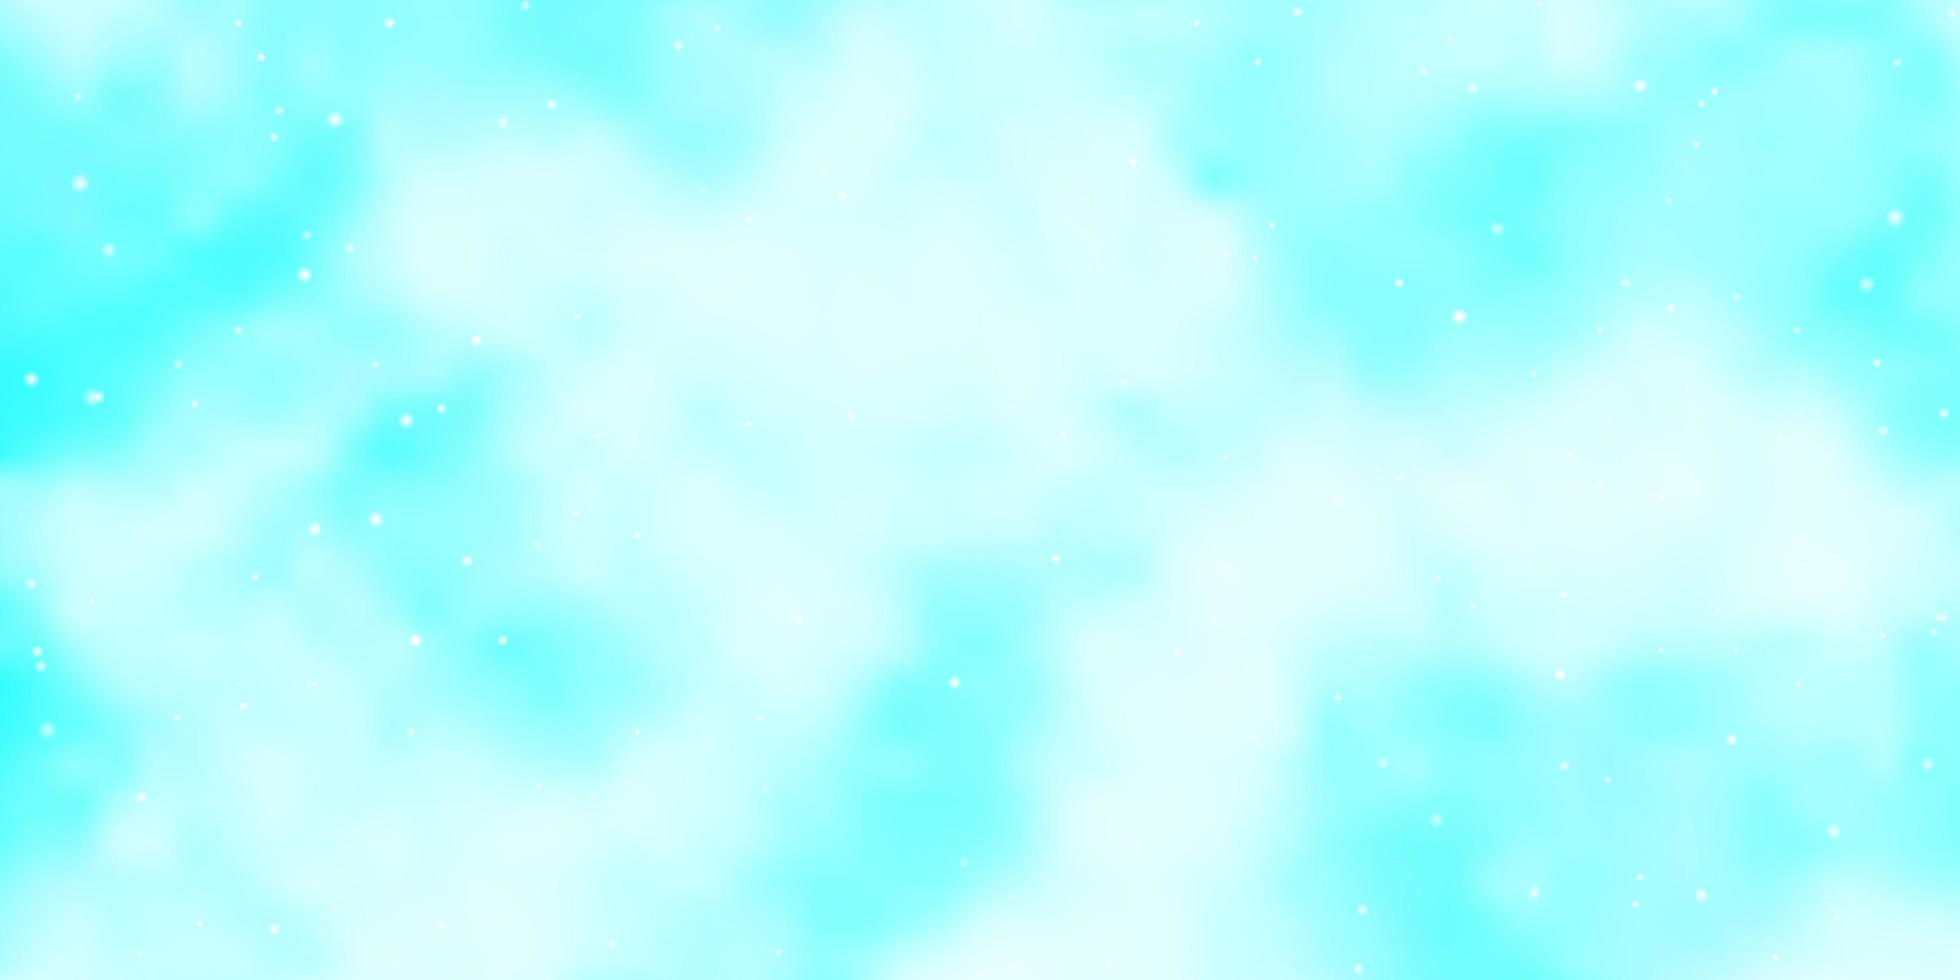 Light BLUE vector background with colorful stars.